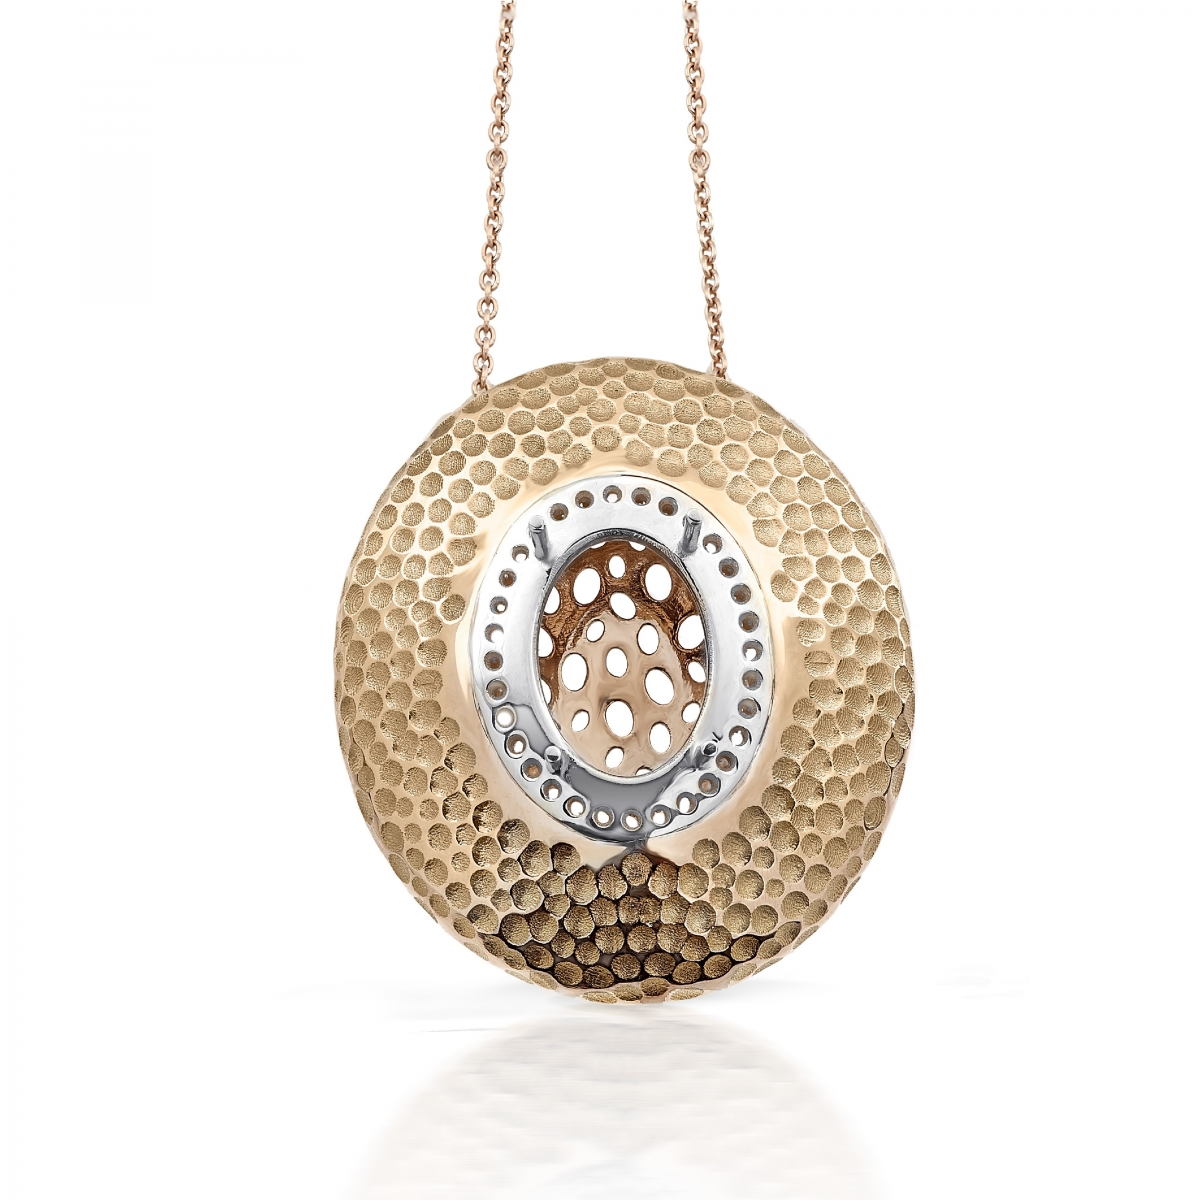 hammered pendant with oval pendants with chain